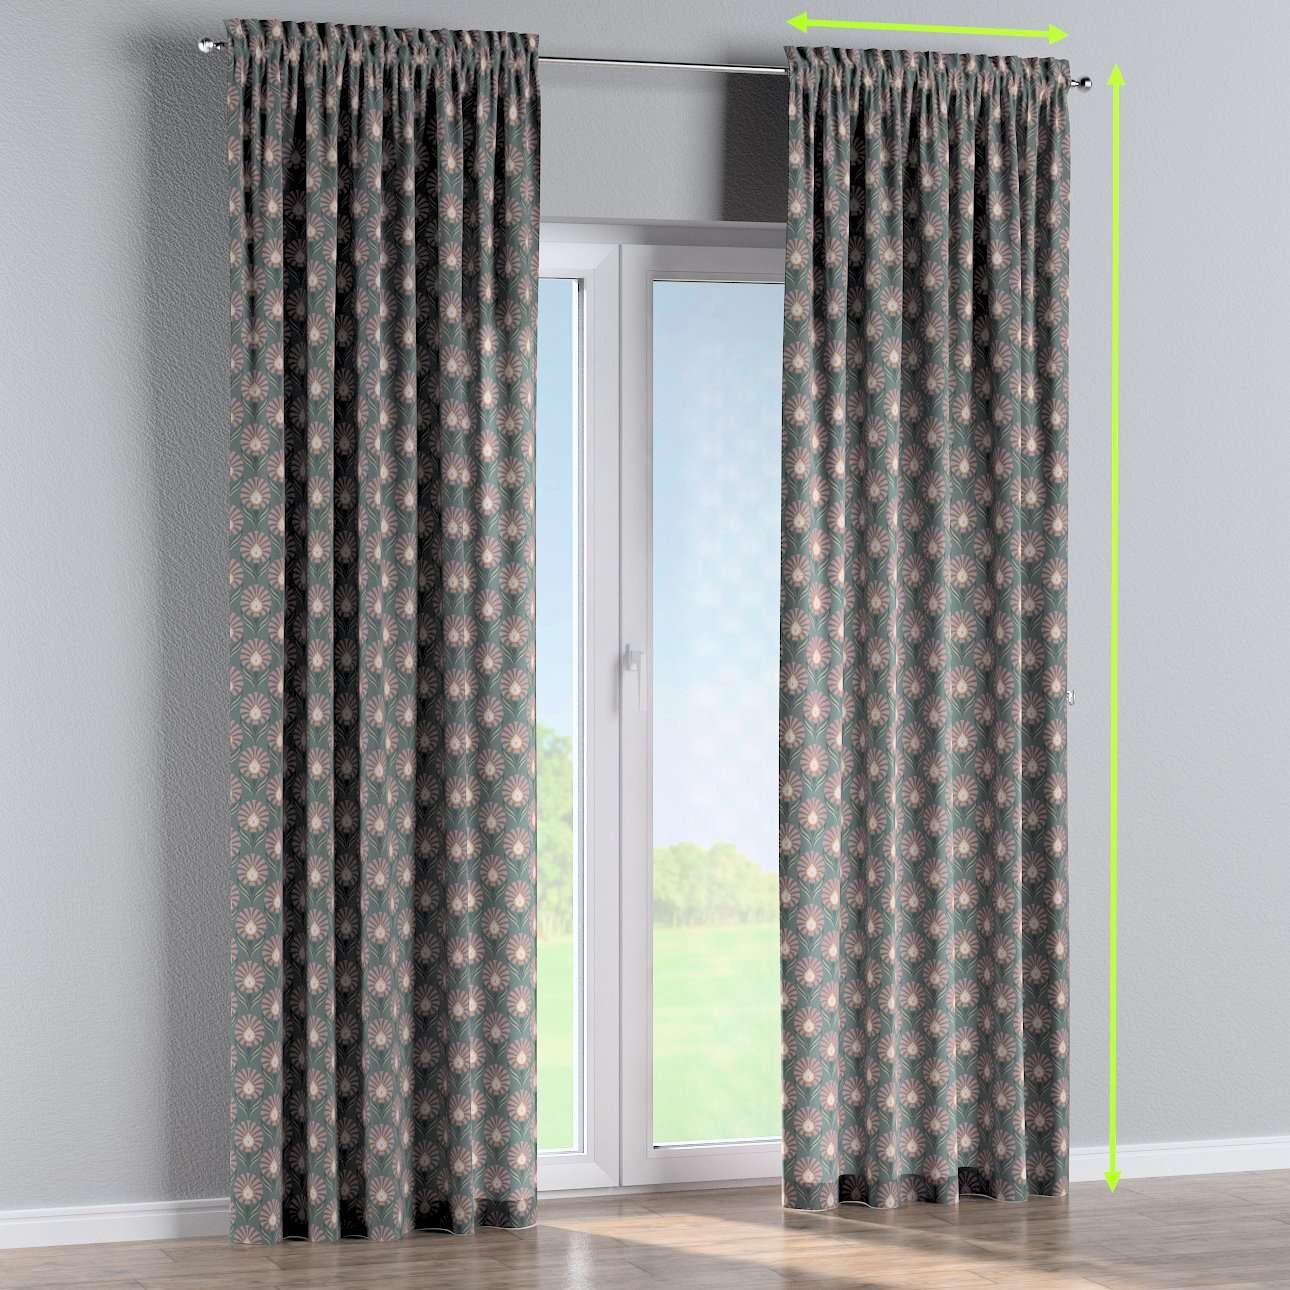 Slot and frill lined curtains in collection Gardenia, fabric: 142-17